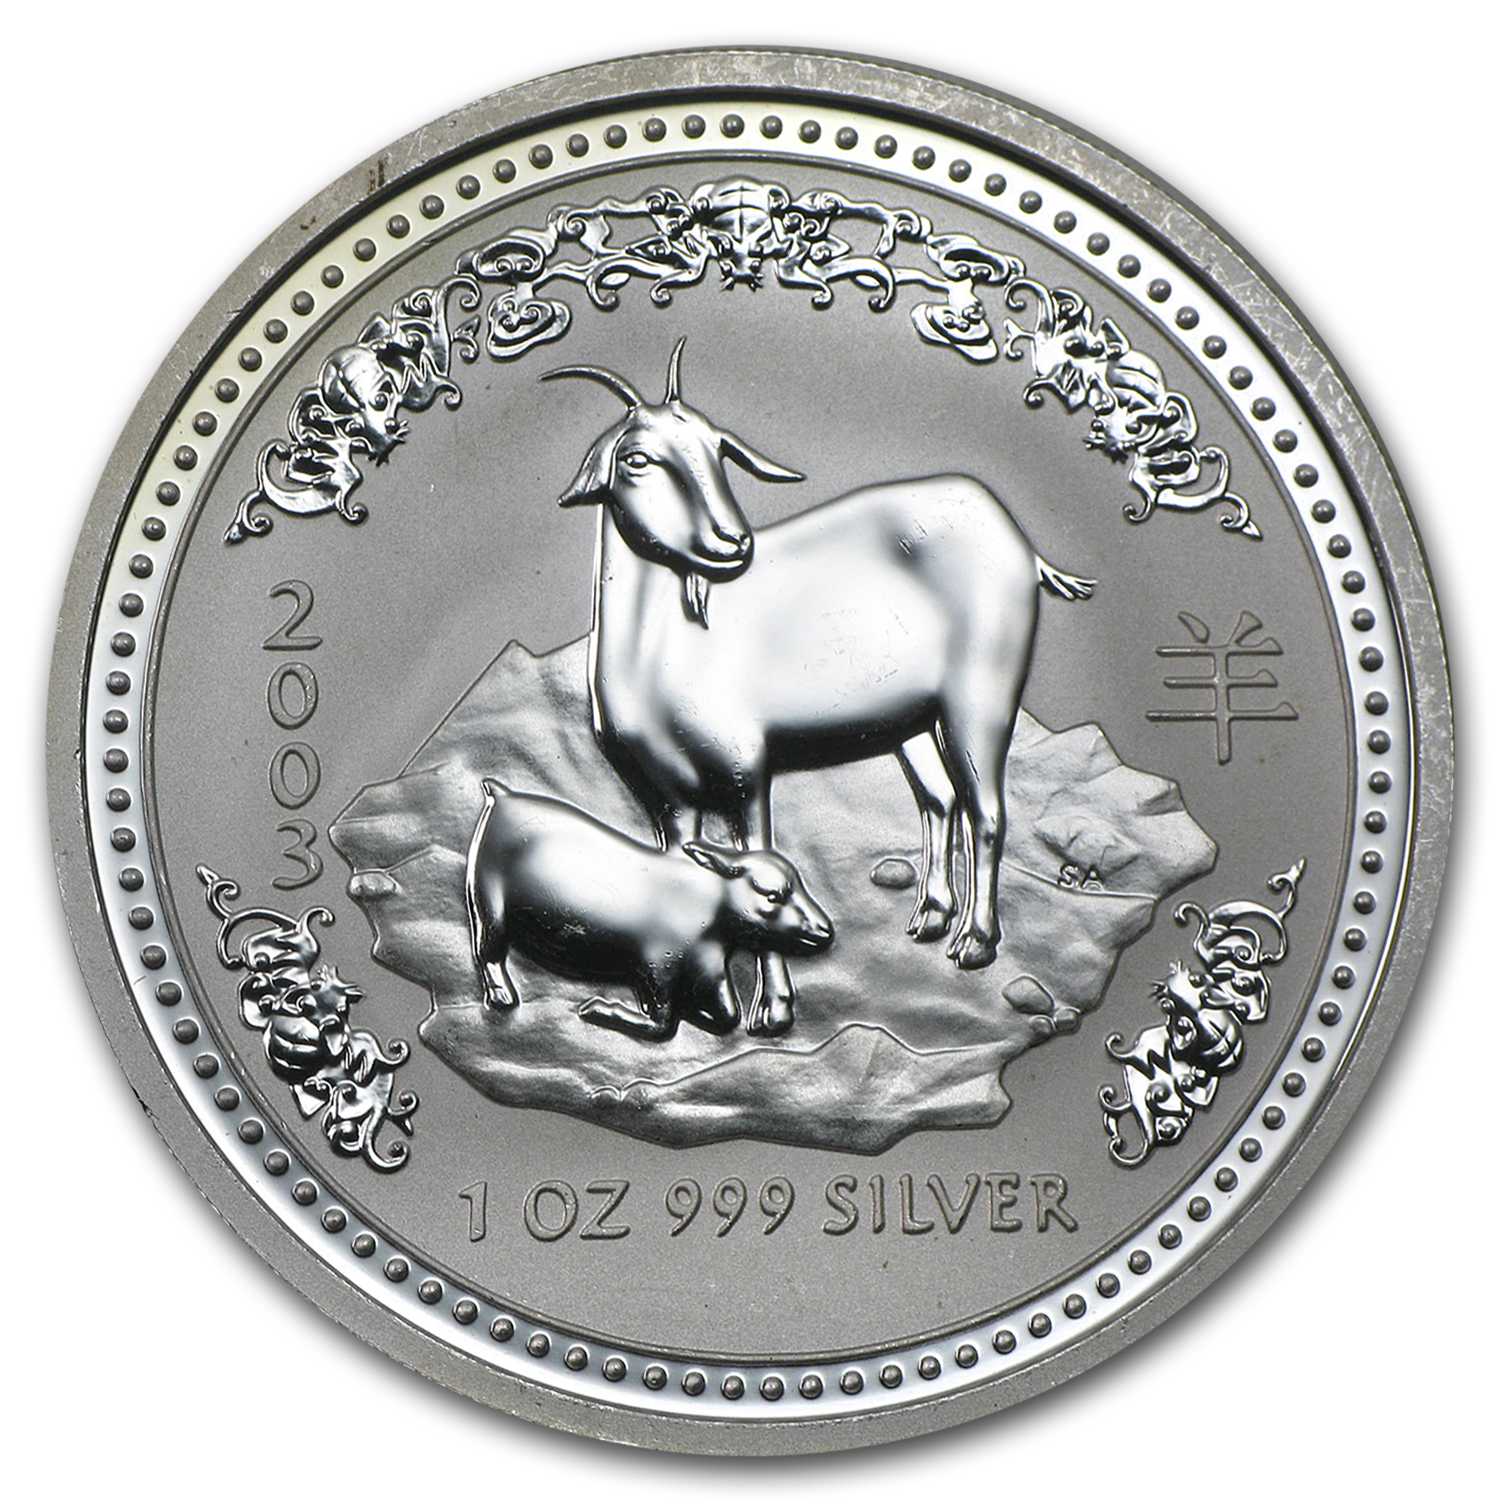 2003 1 oz Silver Lunar Year of the Goat SI (Light Abrasions)